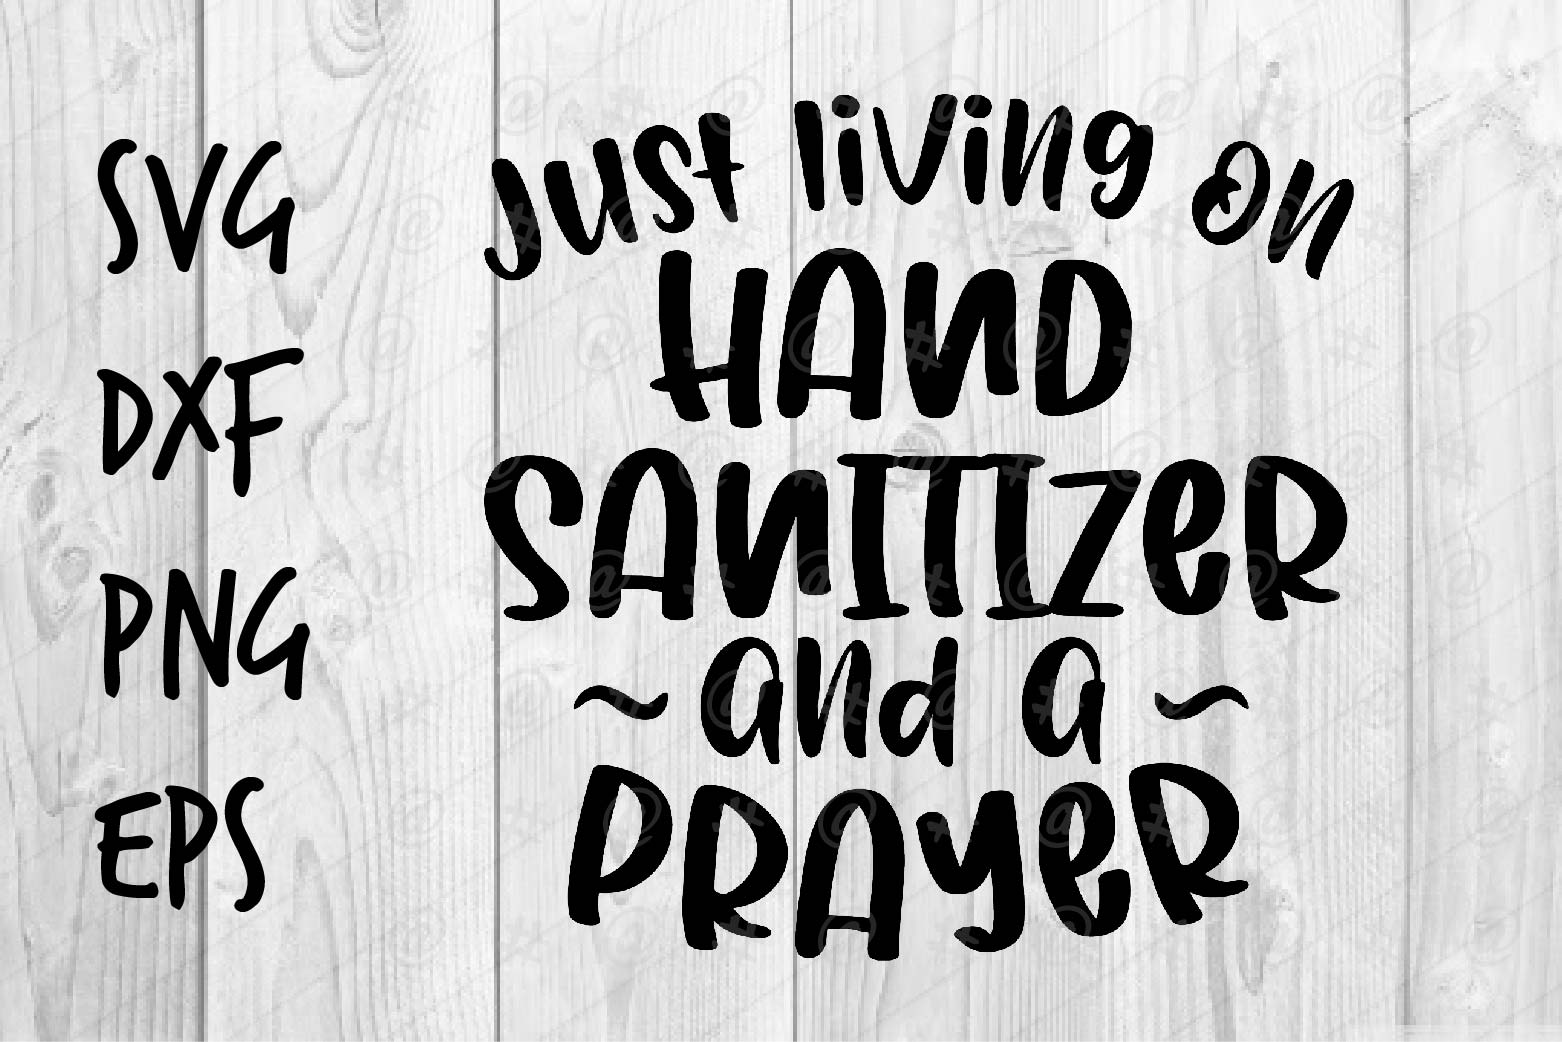 Download Free Hand Sanitizer And A Prayer Graphic By Spoonyprint Creative for Cricut Explore, Silhouette and other cutting machines.